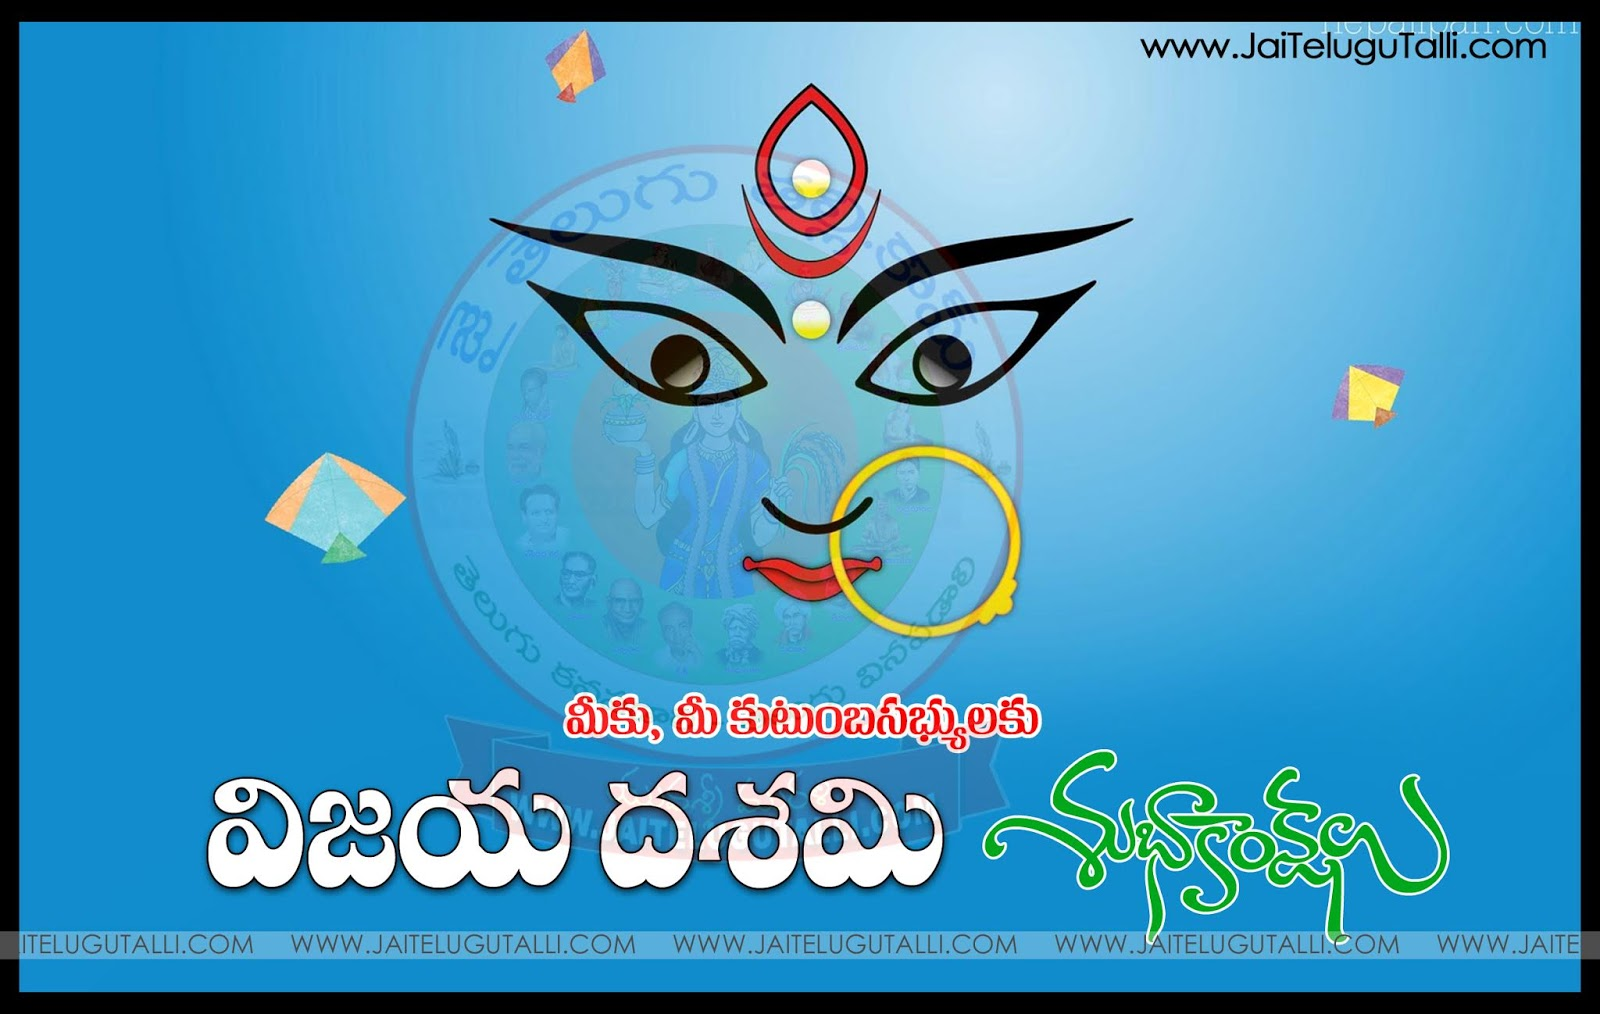 Latest New Telugu Dussehra Images Hd Wallpapers Famous Happy